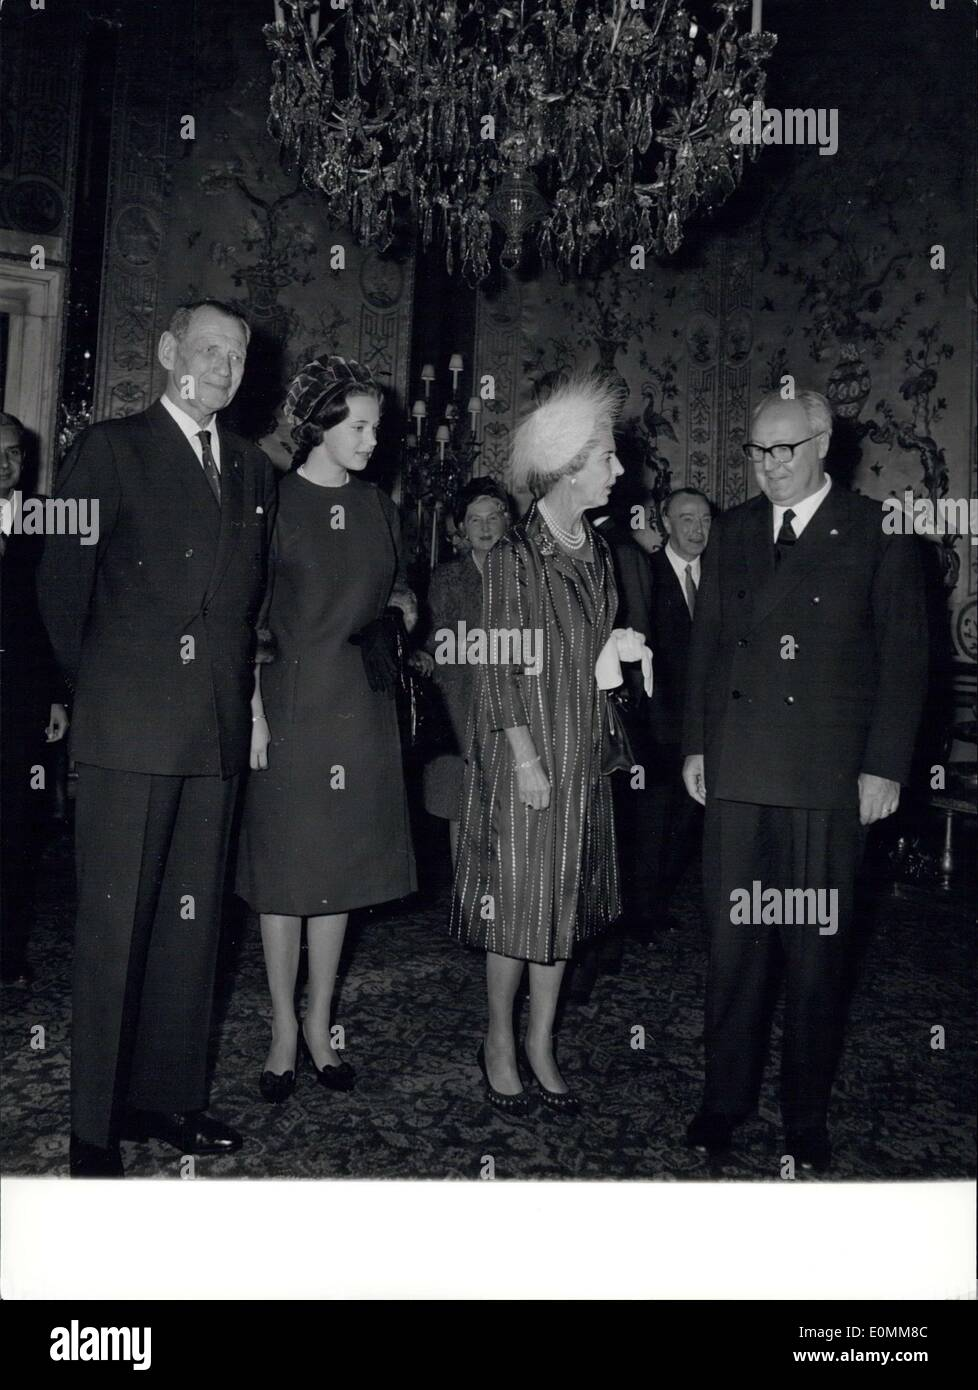 Oct. 21, 1955 - Italian President of the Republic non. Giuseppe Saragat, received today at the Quirinale Palace The Royal Danish Couple King. Frederick and Queen Ingrid, accompanied by the princess Benedikte. Photo shows King Frederick, Princess Benedikte, Queen Ingrid and President Saragat. - Stock Image